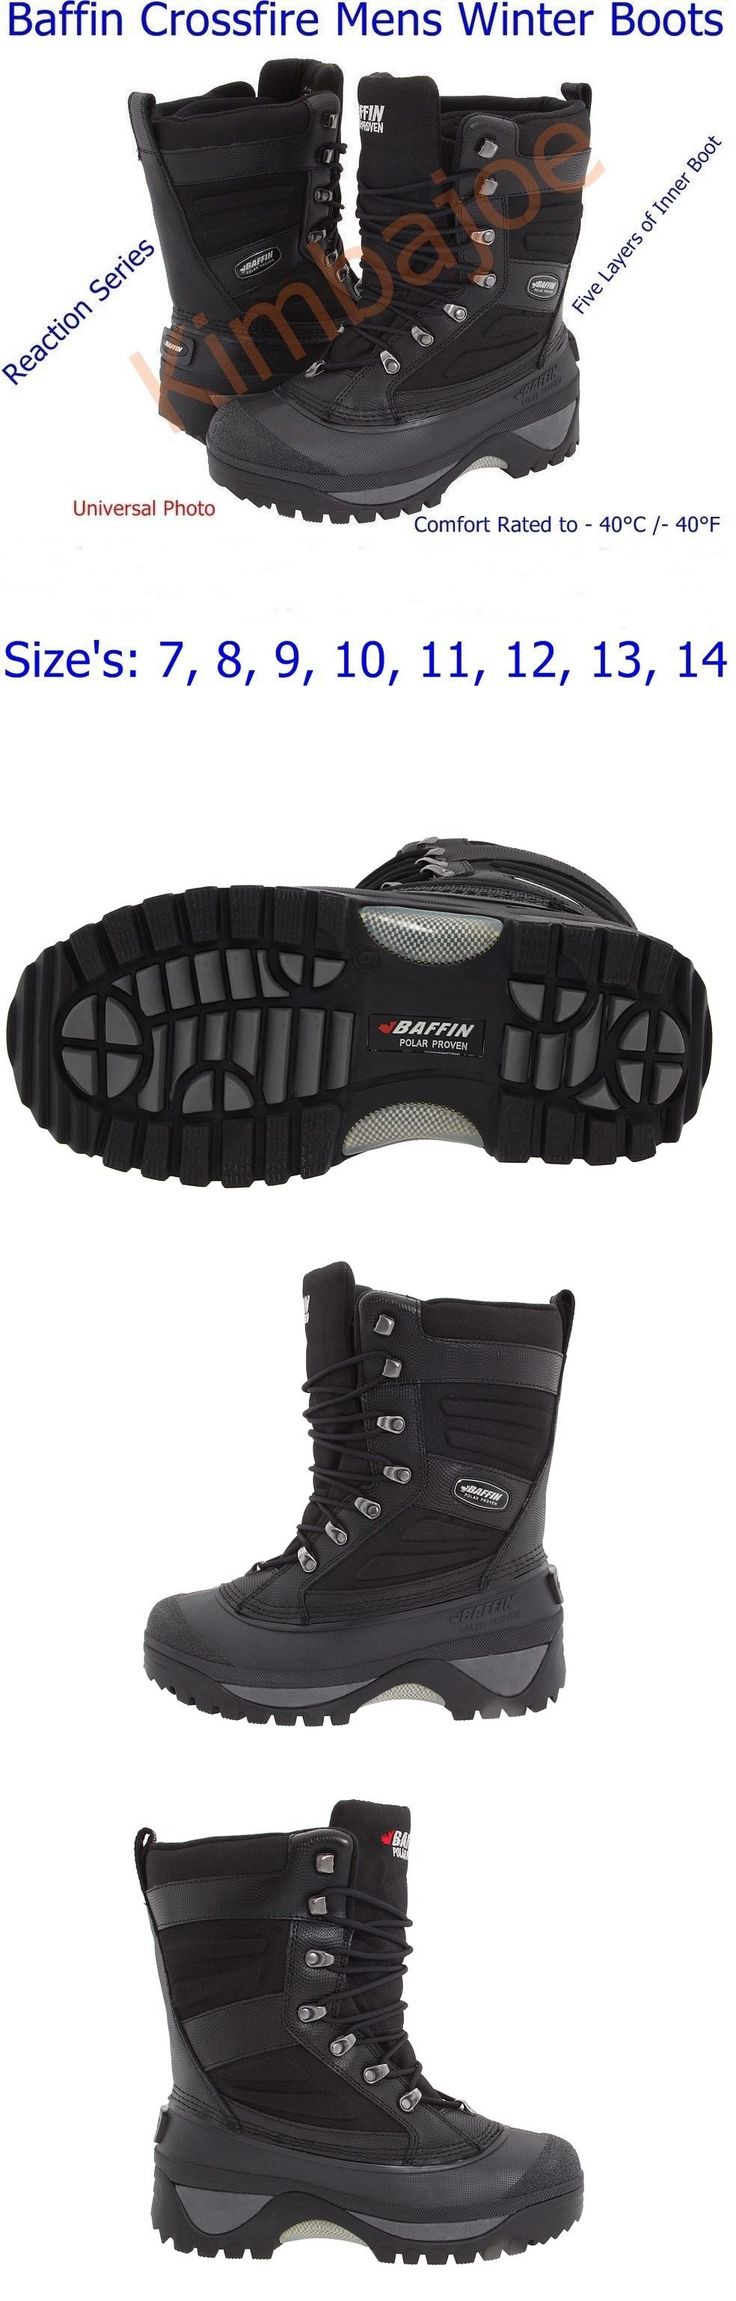 Other Winter Sport Clothing 16060: Baffin Crossfire Mens Winter Boots, Reaction Series, Sizes: 7 8 9 10 11 12 13 14 -> BUY IT NOW ONLY: $299.95 on eBay!